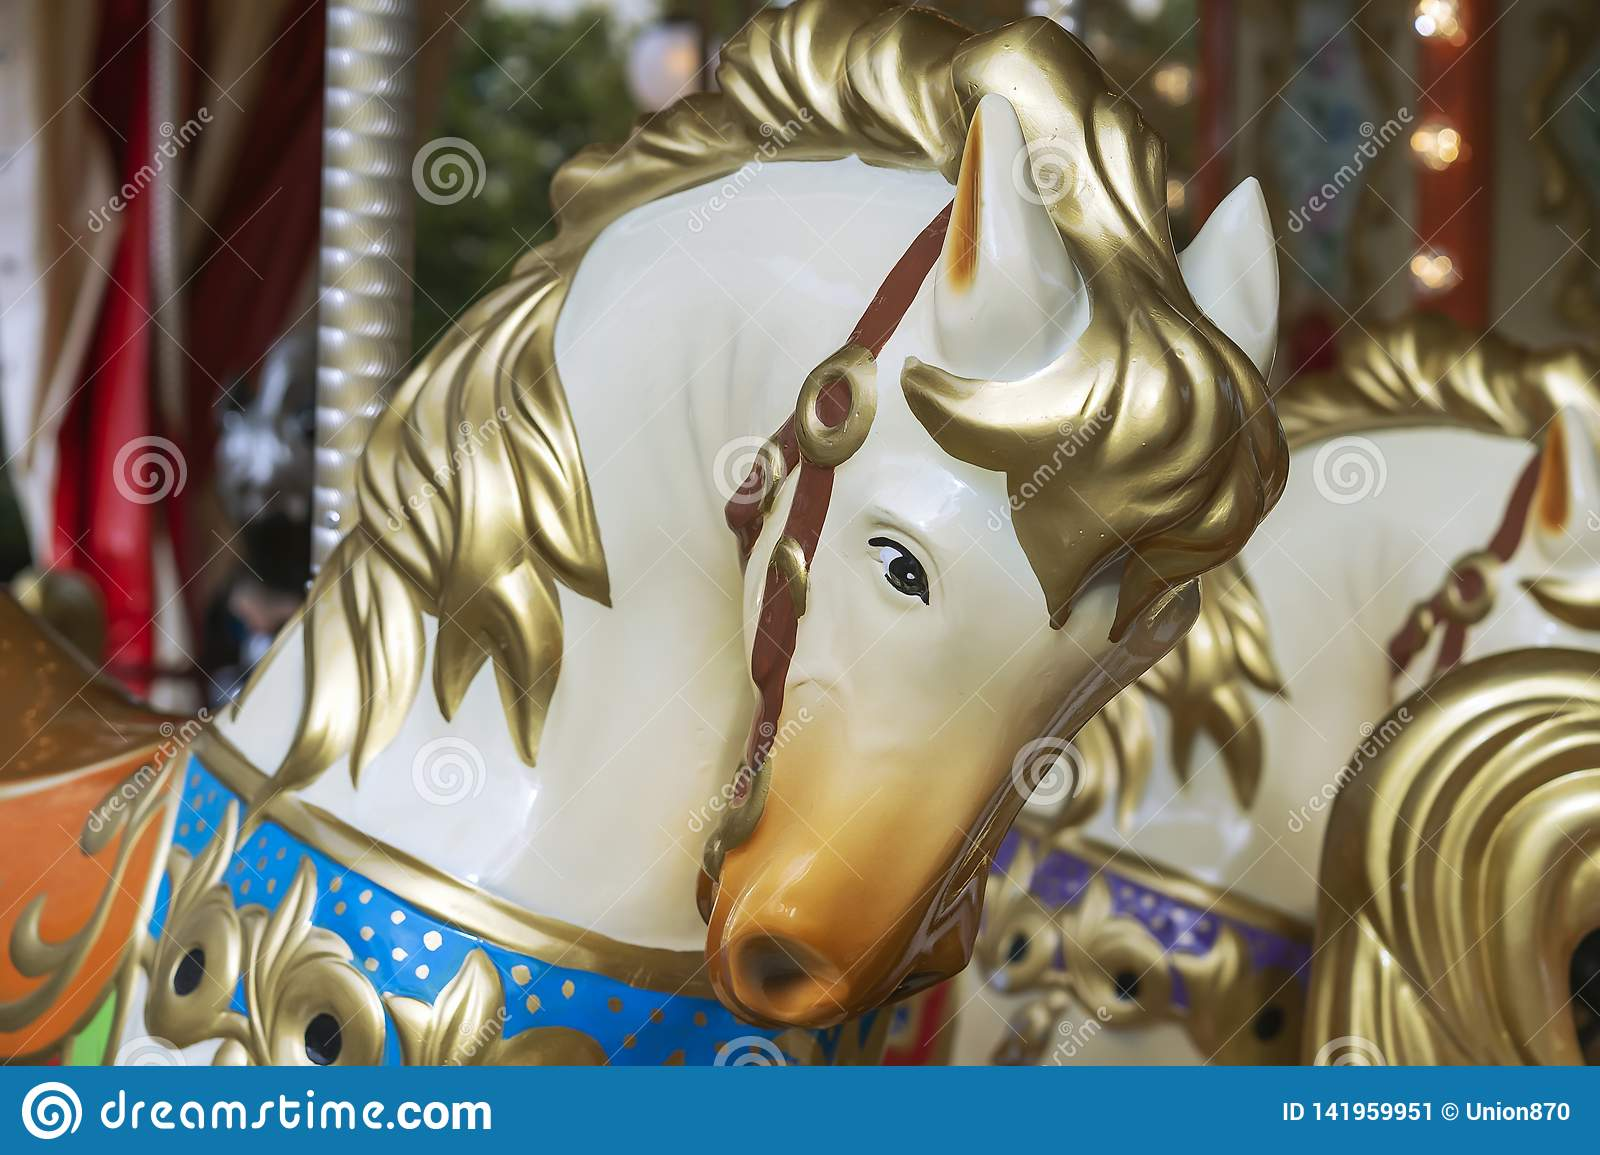 Colorful horse head on a vintage circular merry-go-round